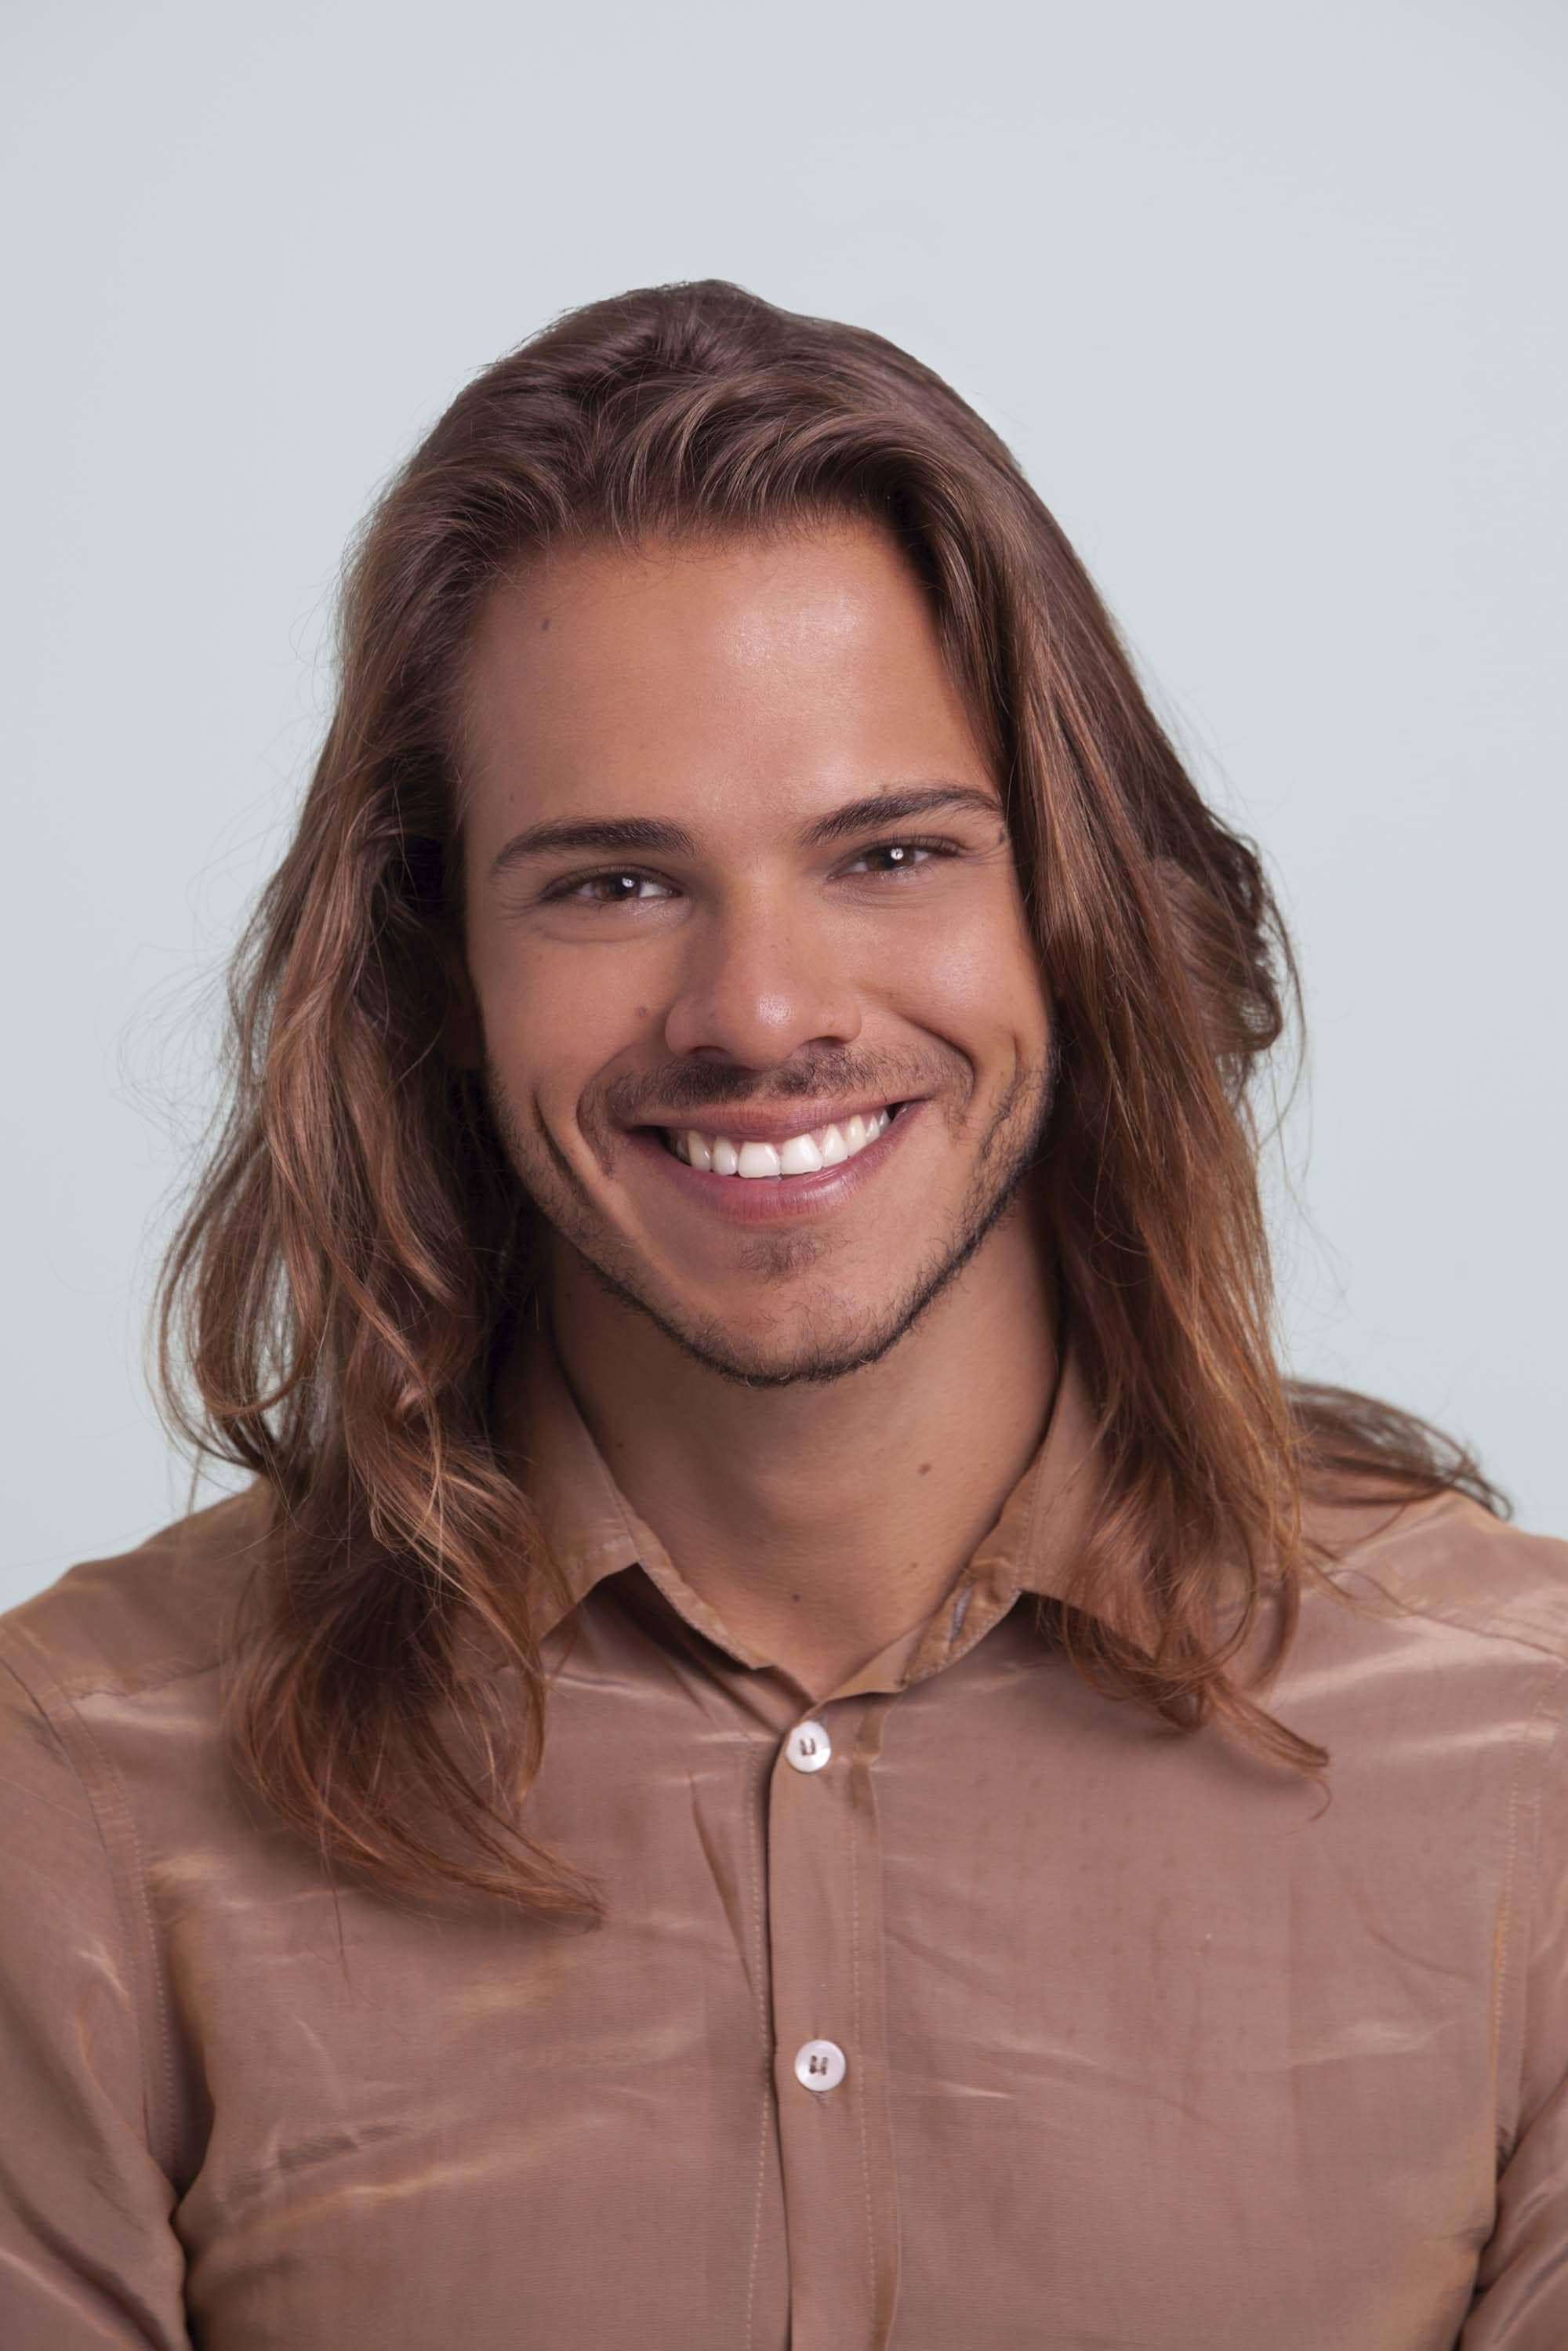 long haired men dating sites